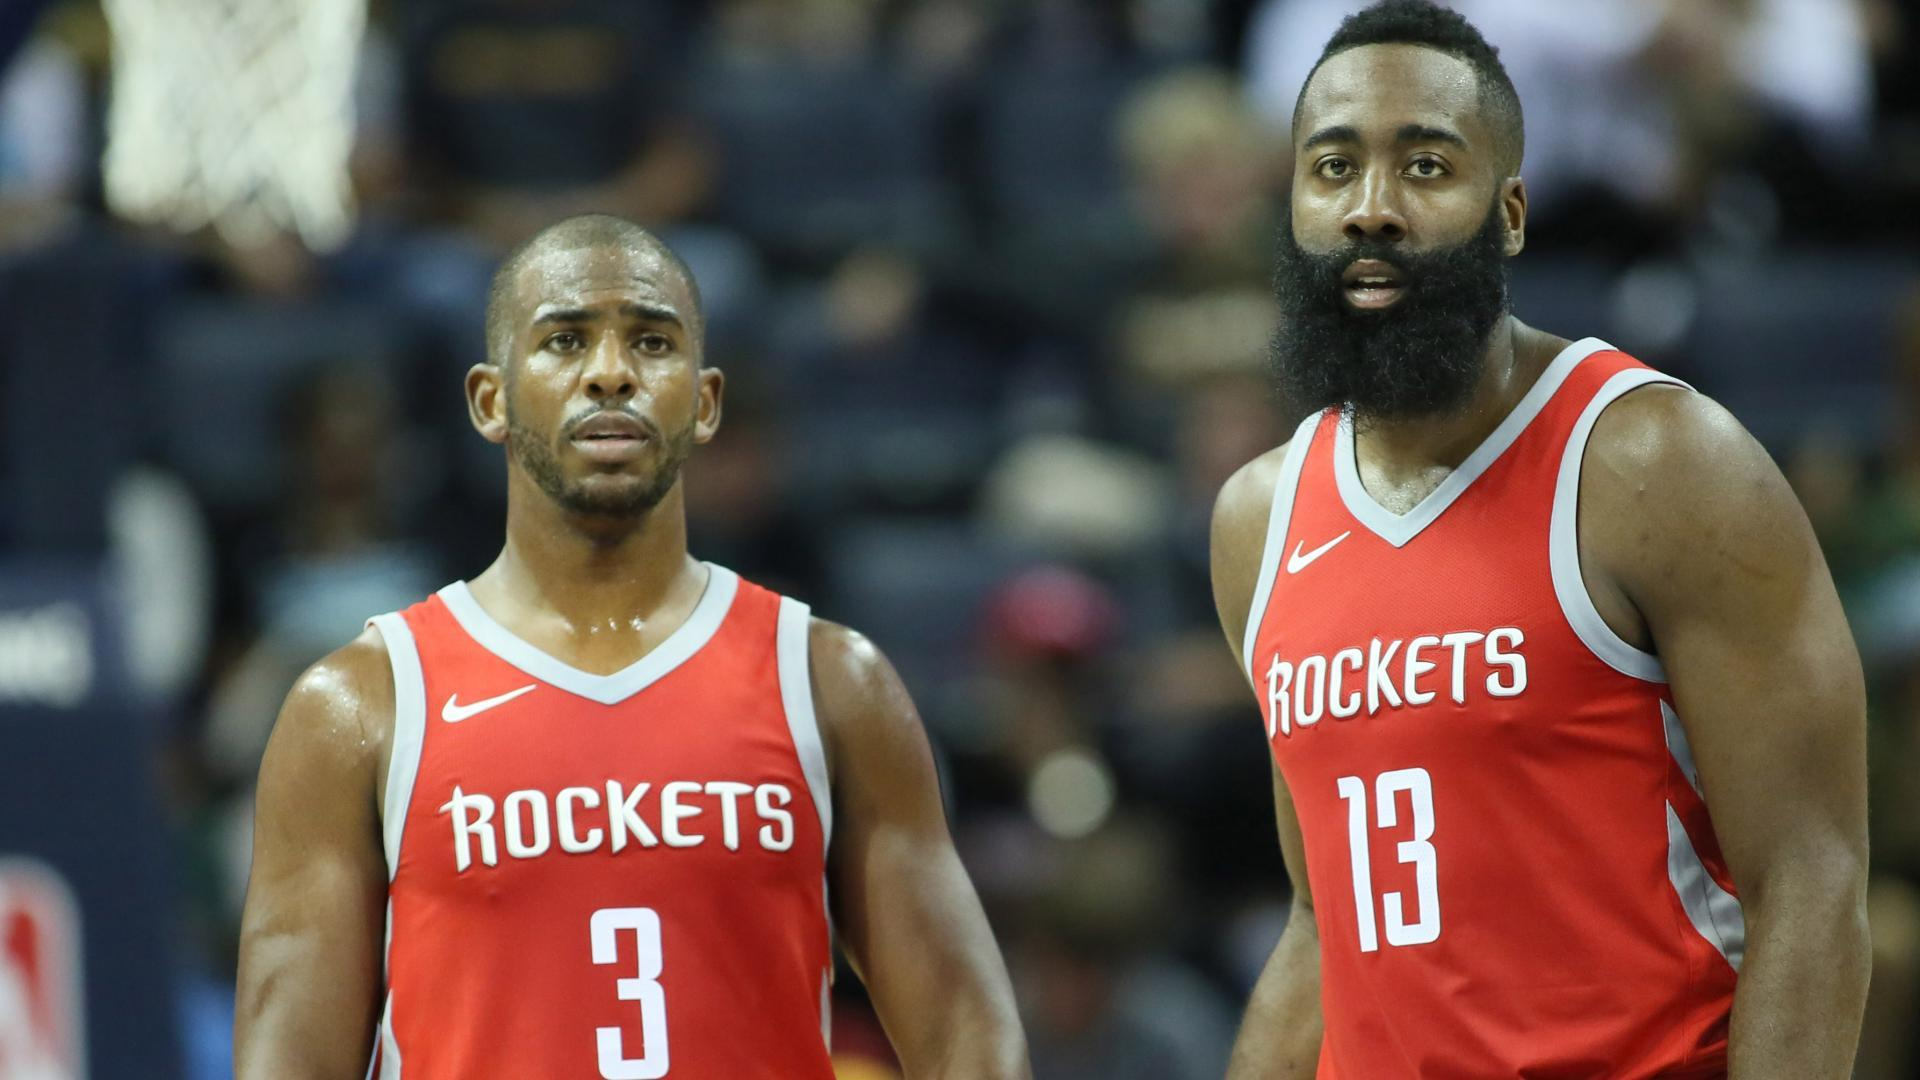 Rockets' Chris Paul still dealing with knee soreness